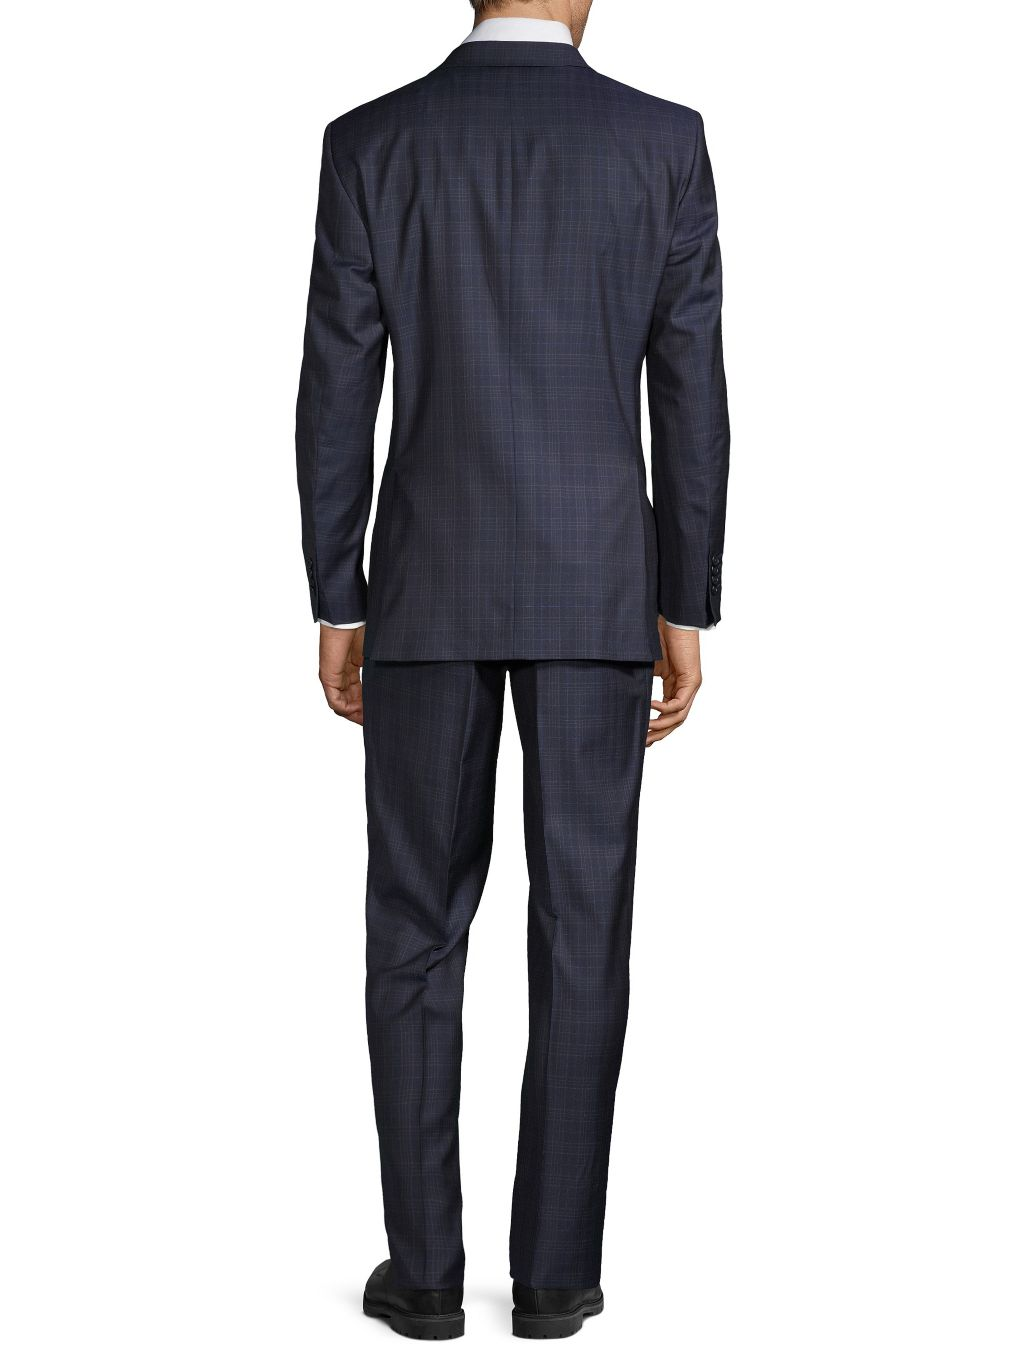 Saks Fifth Avenue Made in Italy Tailored-Fit Plaid Wool Suit